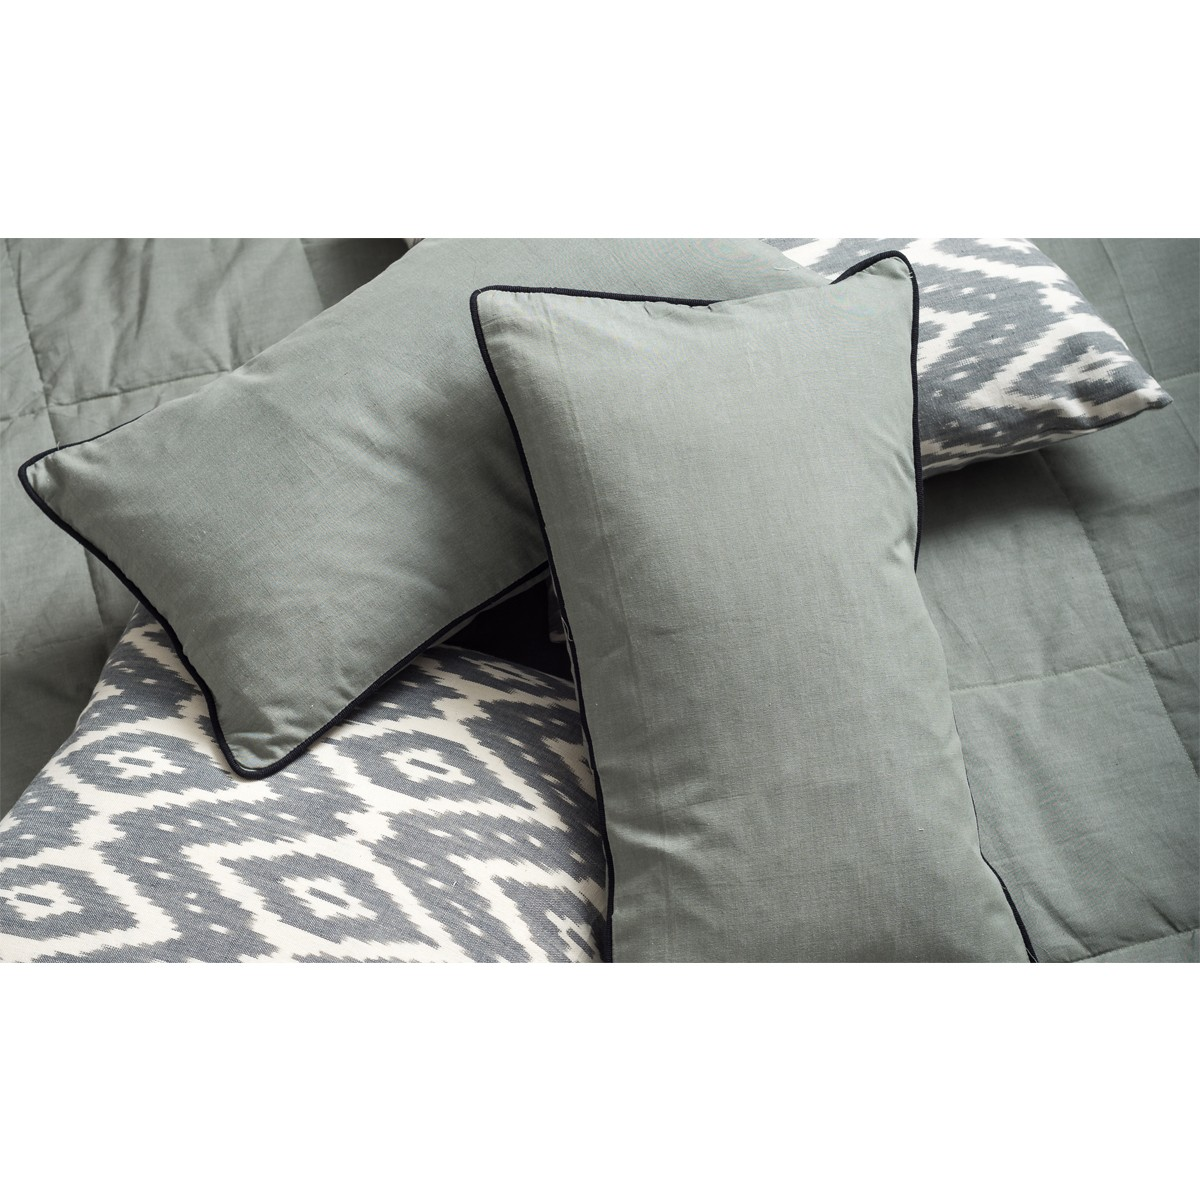 Single grey cushion cover with black piping